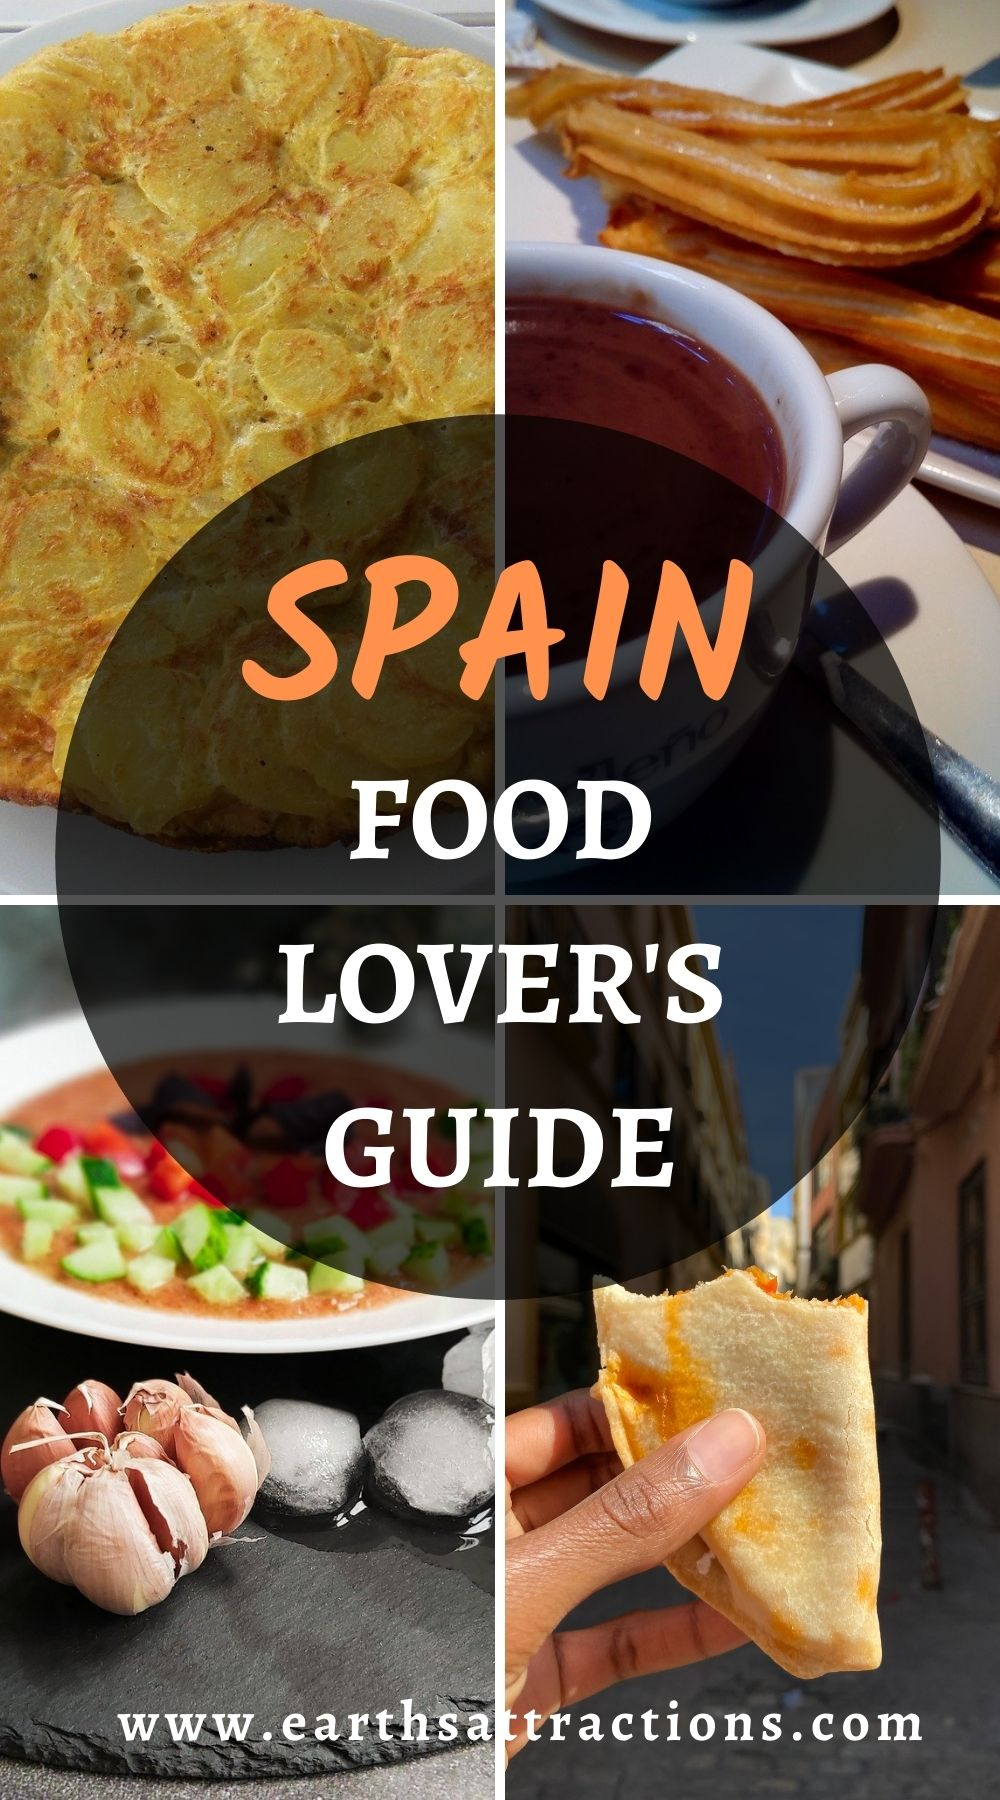 Food lover's guide to Spain: the top 16 Spanish dishes to try! This article presents you the best Spanish desserts, Spanish breakfasts, the top Spanish traditional food! Read it now and discover what to eat in Spain! #spain #spanishfood #spainfood #spanishfoods #food #traveleurope #traveldestination #travelfood #foodieguide #spainfoodieguide #eatinspain #earthsattractions